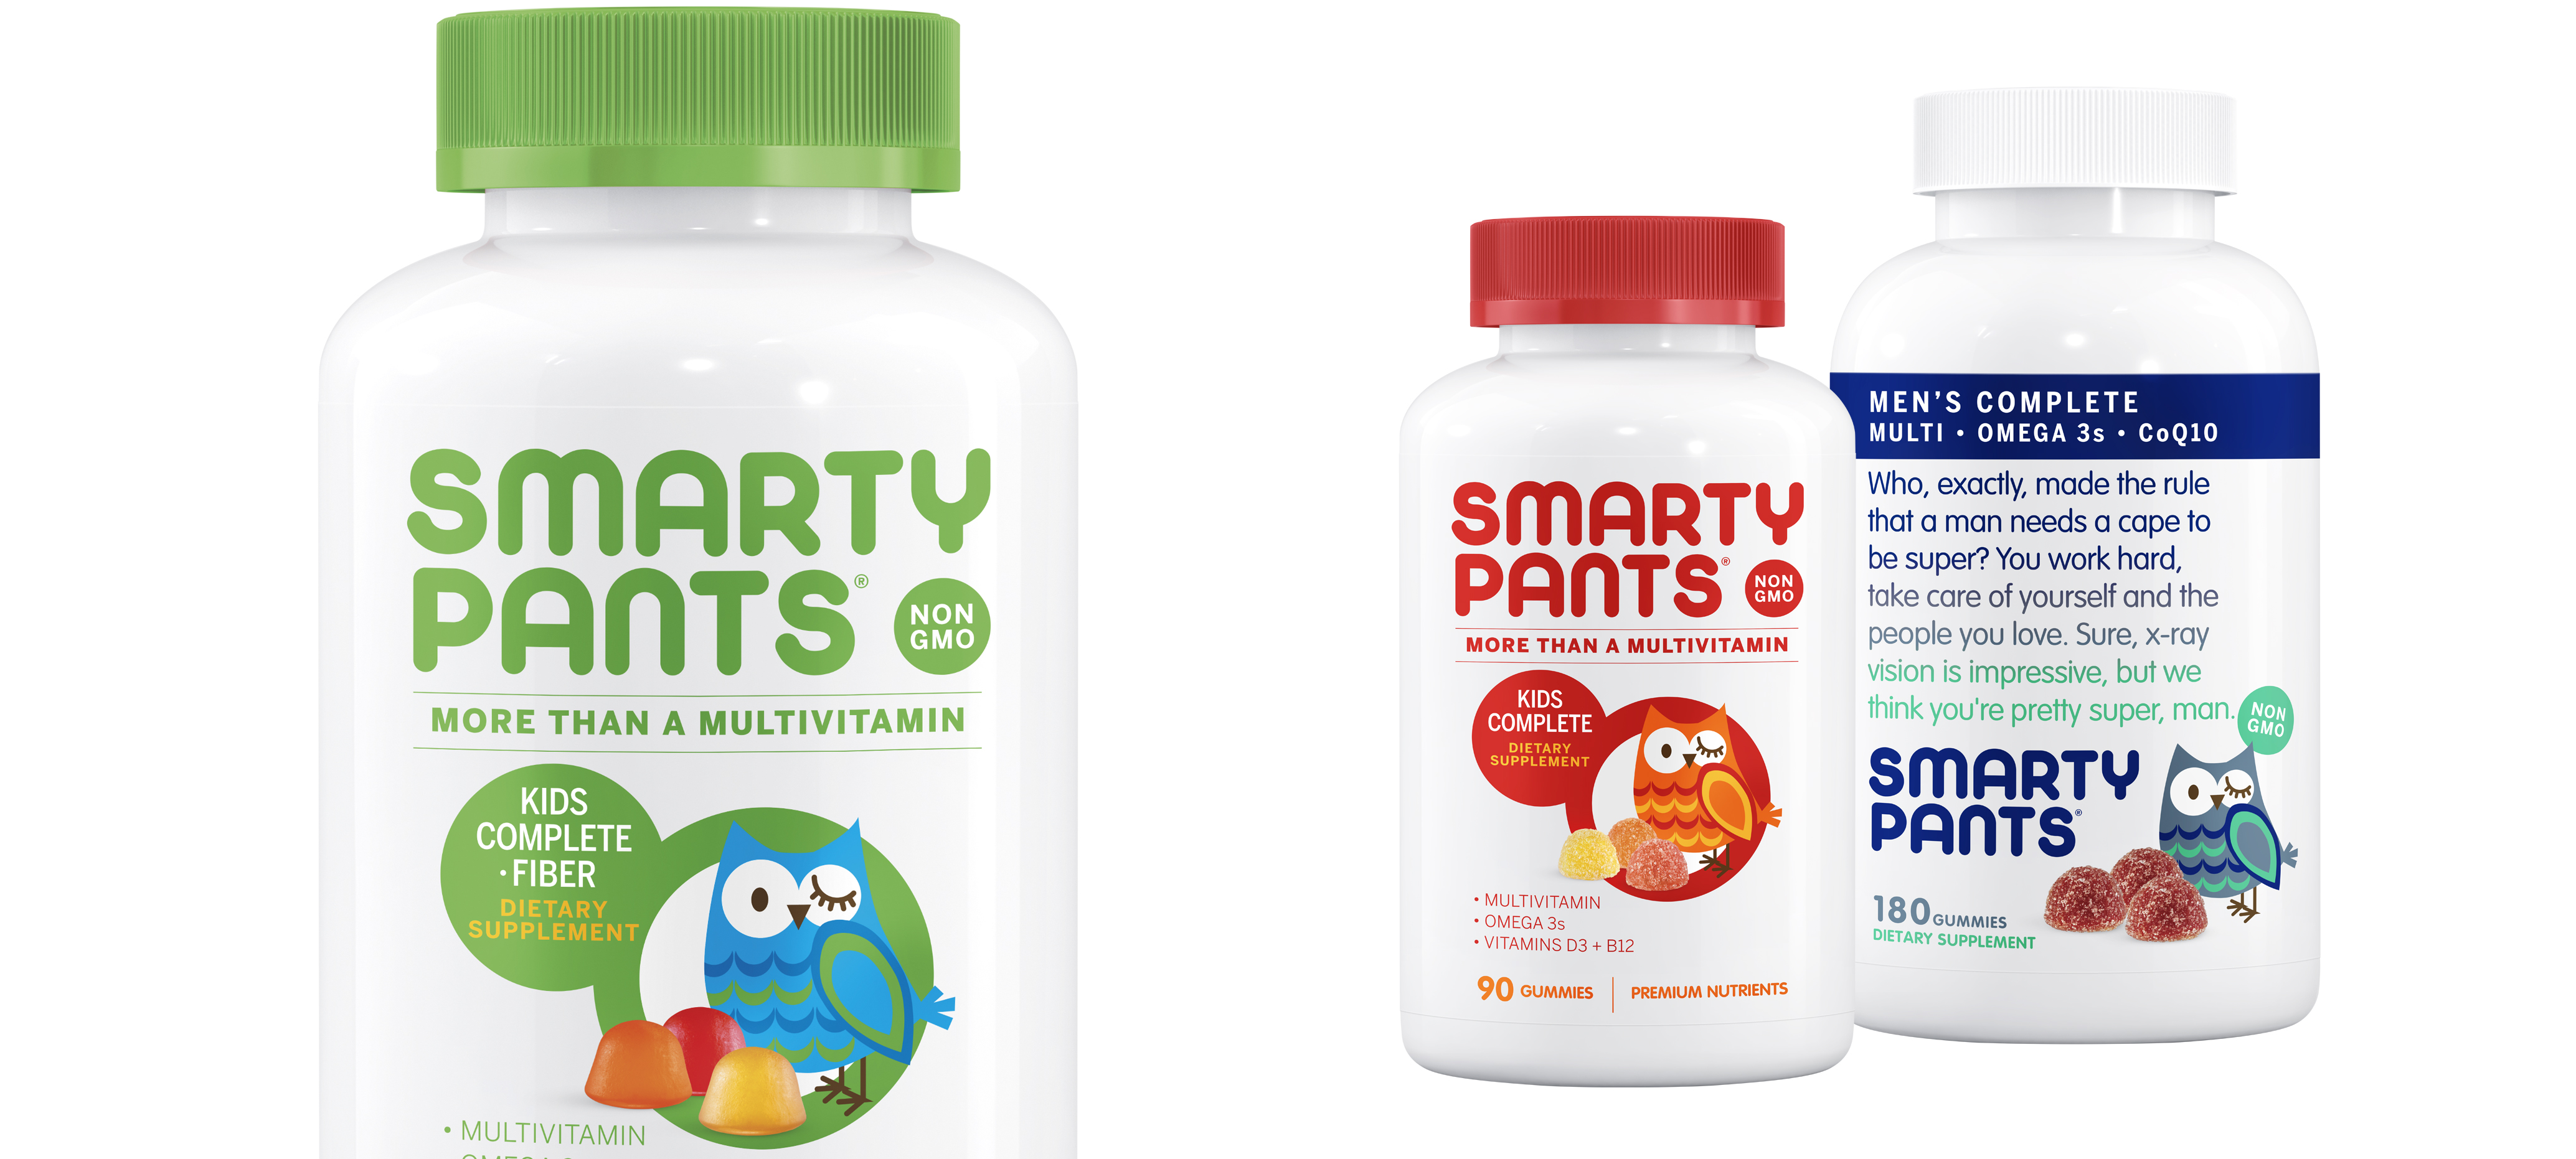 SmartyPants Vitamins - CGI Bottles & Labels - July 2016 (2) (1)